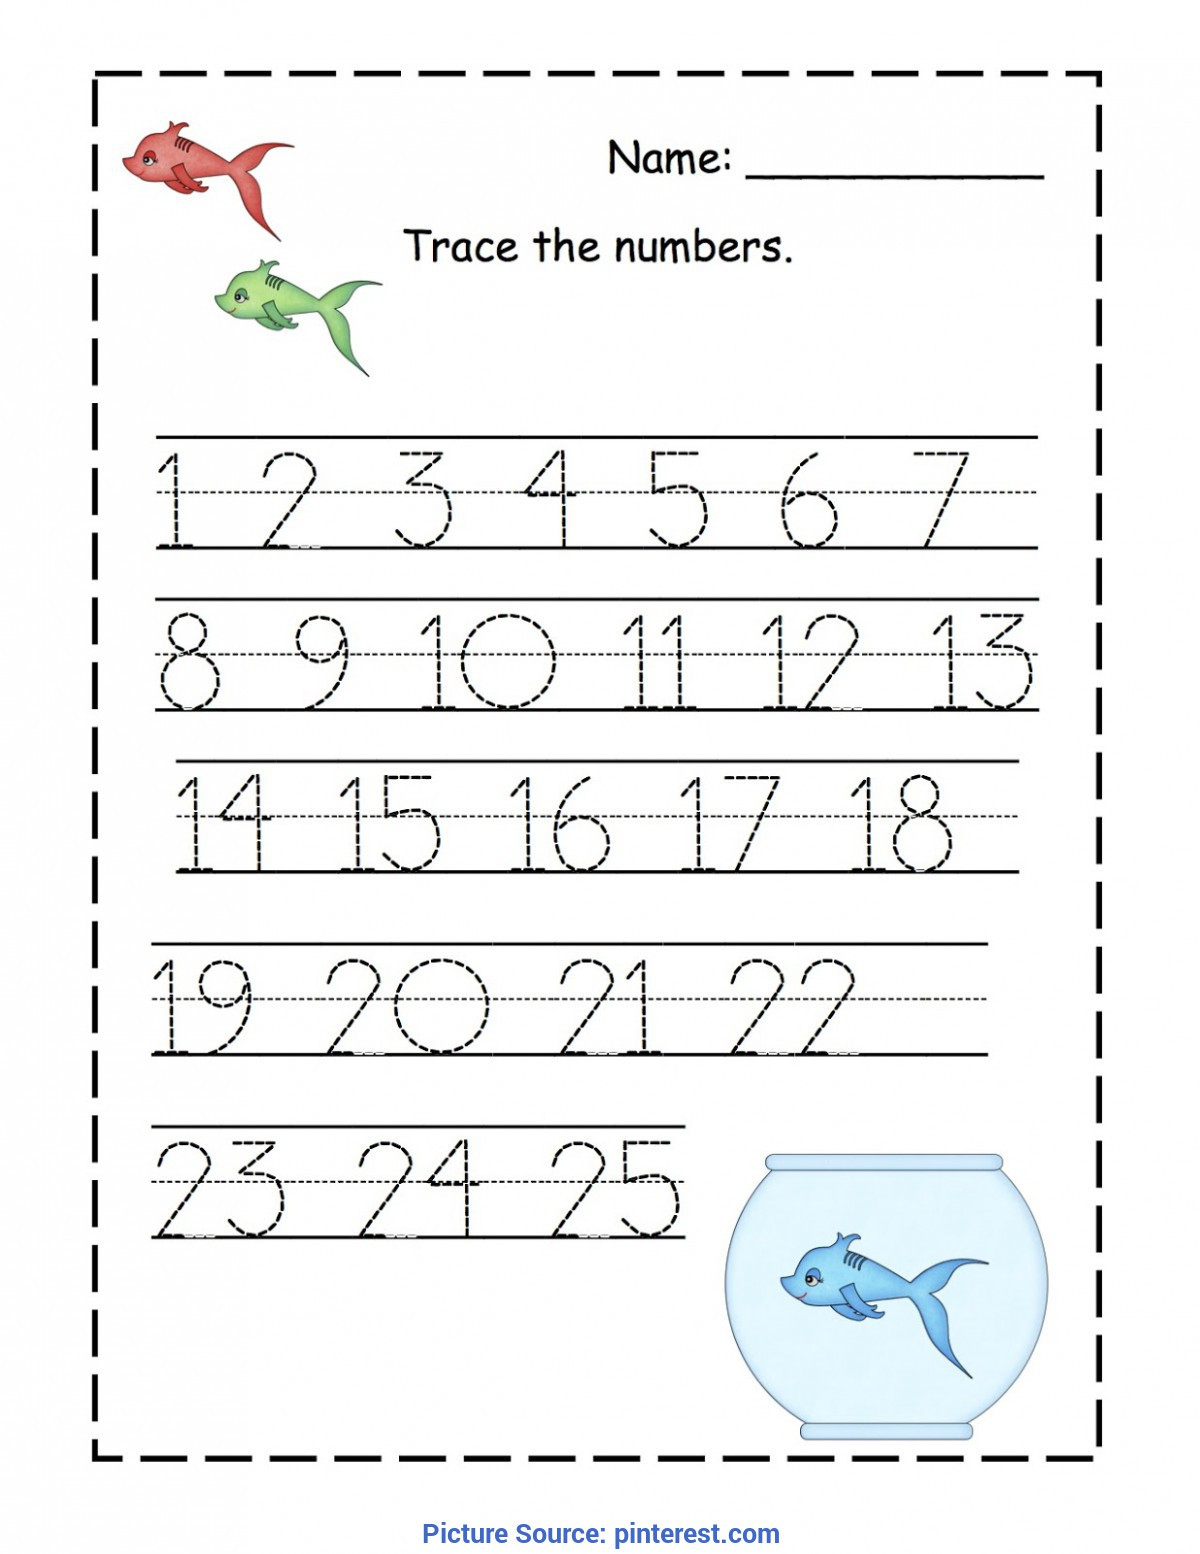 Dr Seuss Math Worksheets Valuable Dr Seuss Lesson Plans Preschool Printables